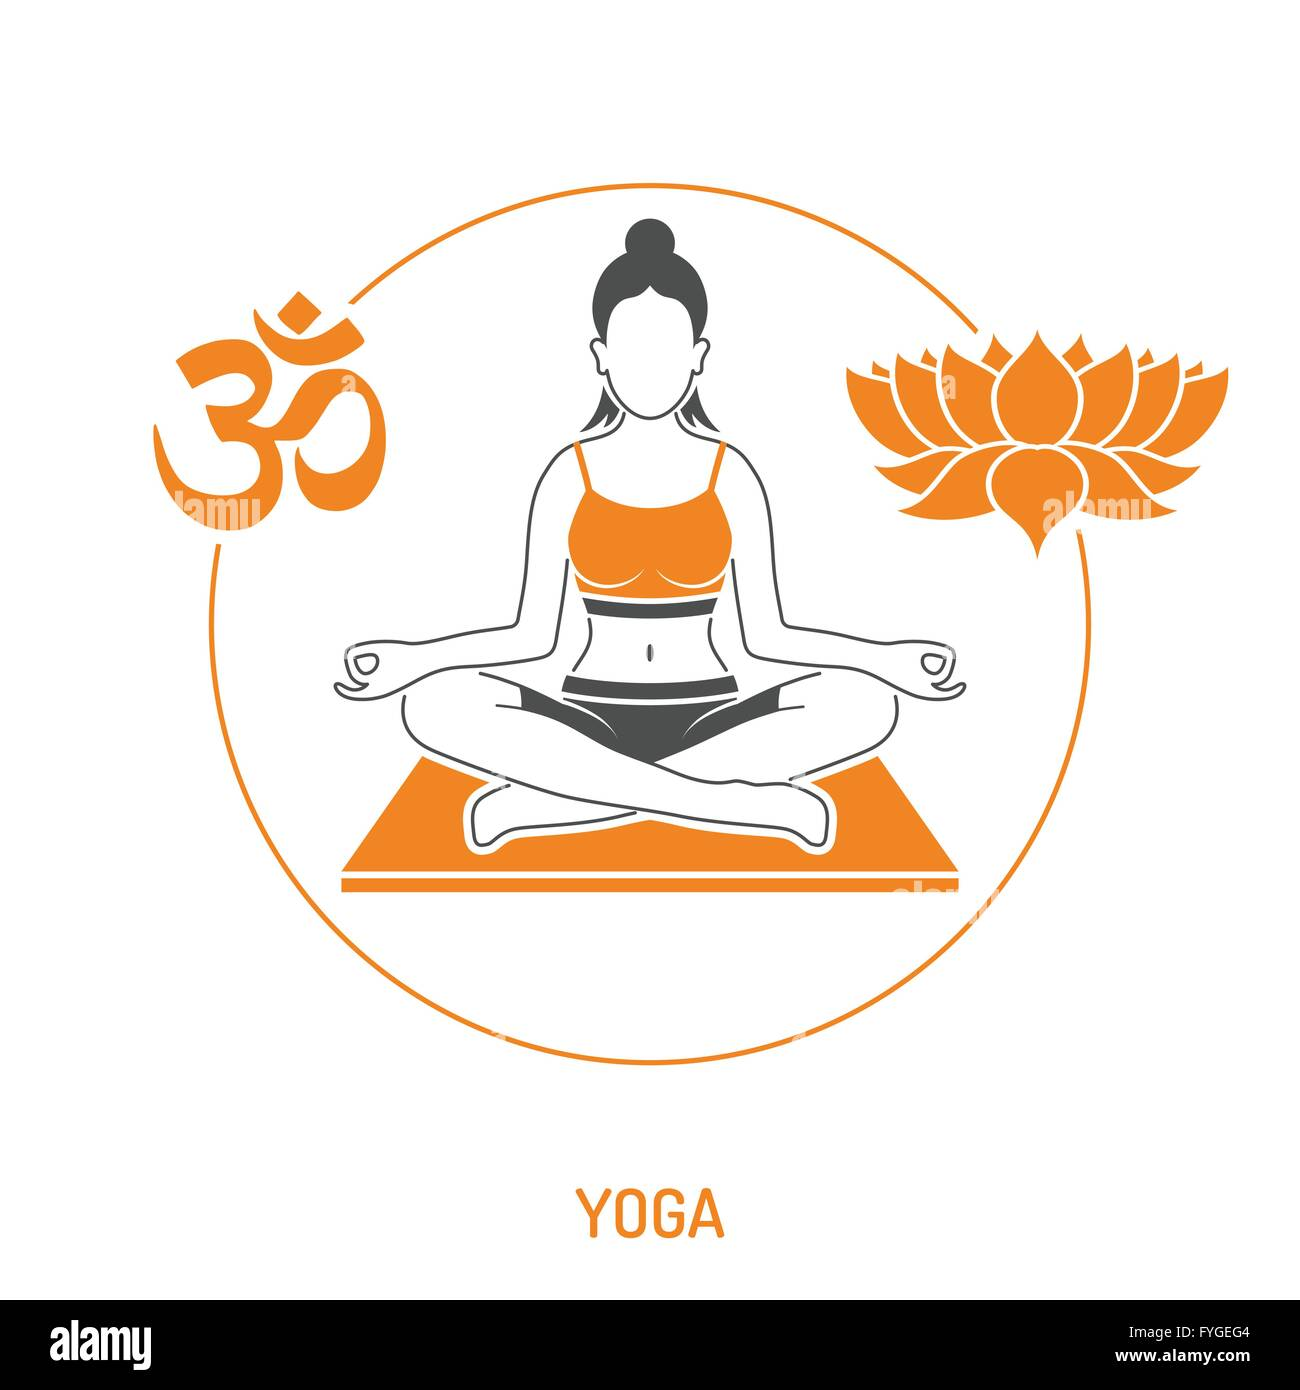 Yoga and Fitness Concept - Stock Image